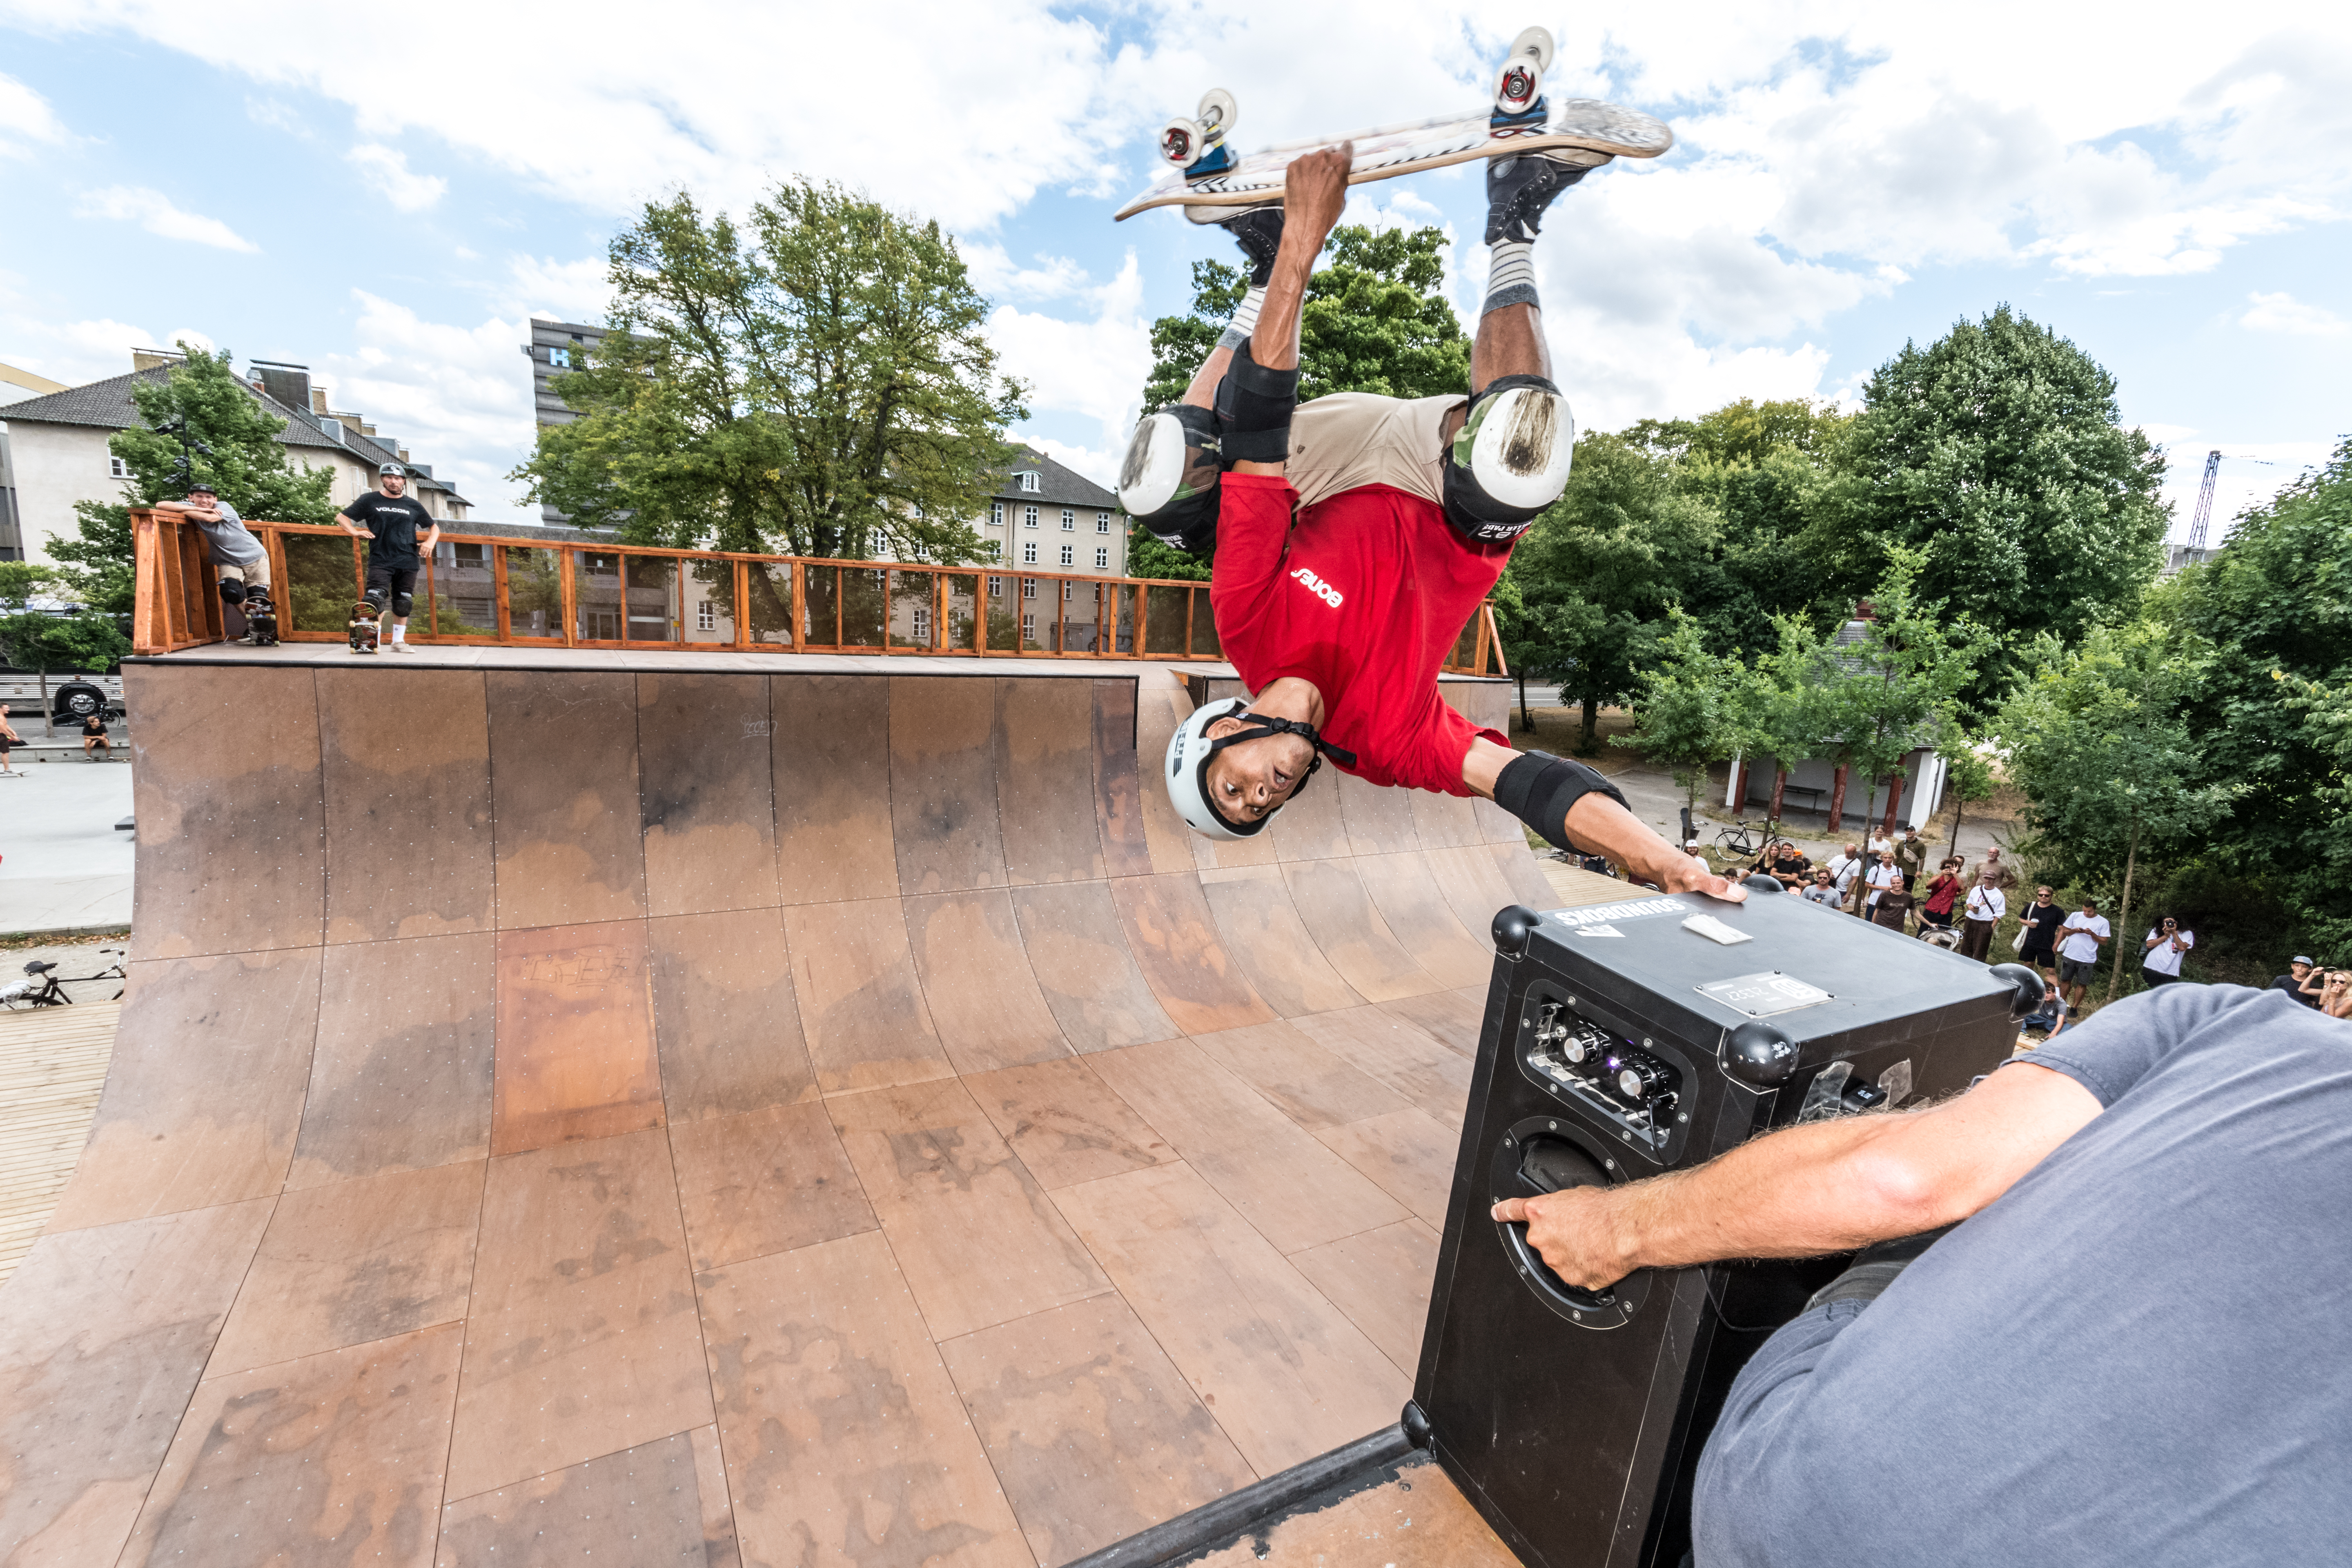 CPH PRO 2018 Vert and Hullet Session - 14 - Nicky Gurrero